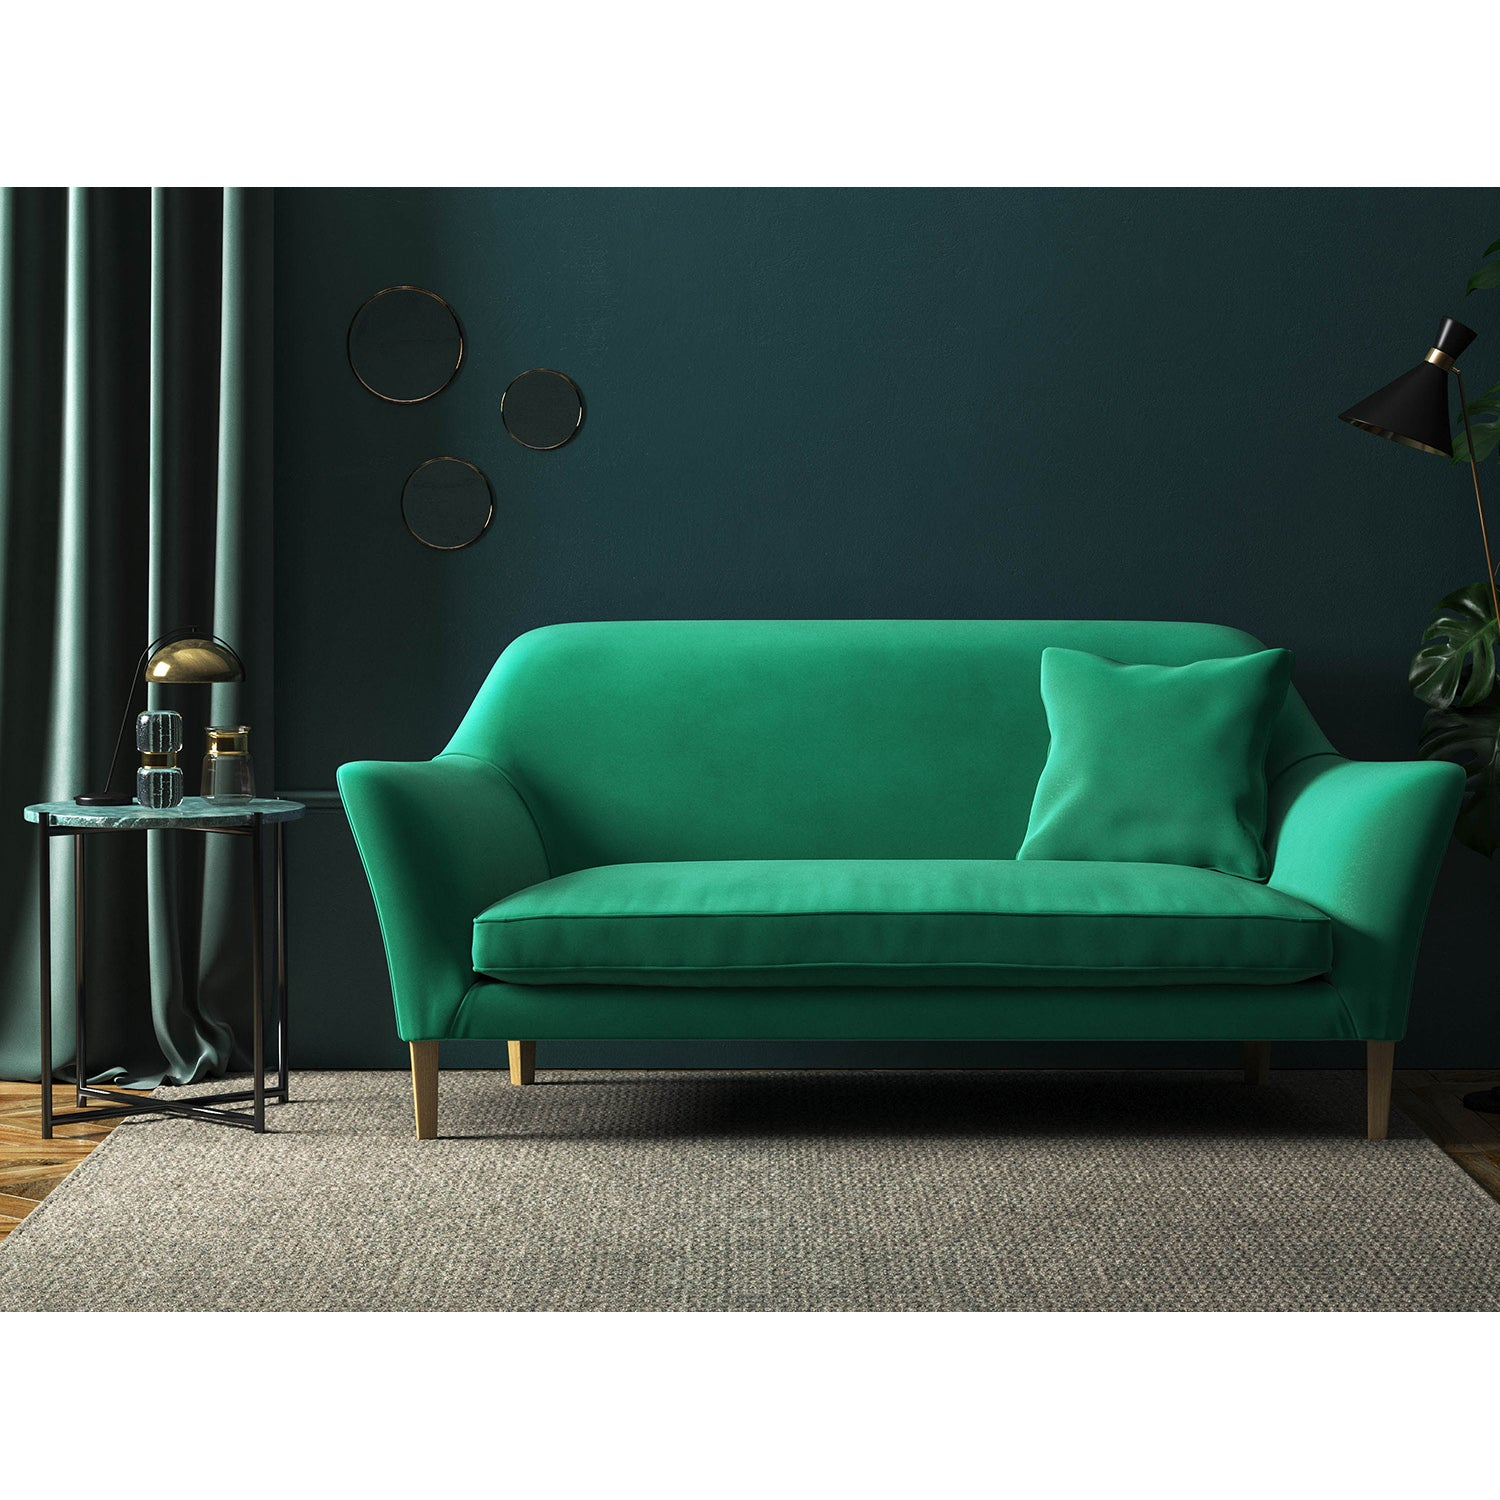 Sofa in a aqua green upholstery fabric for domestic and contract use